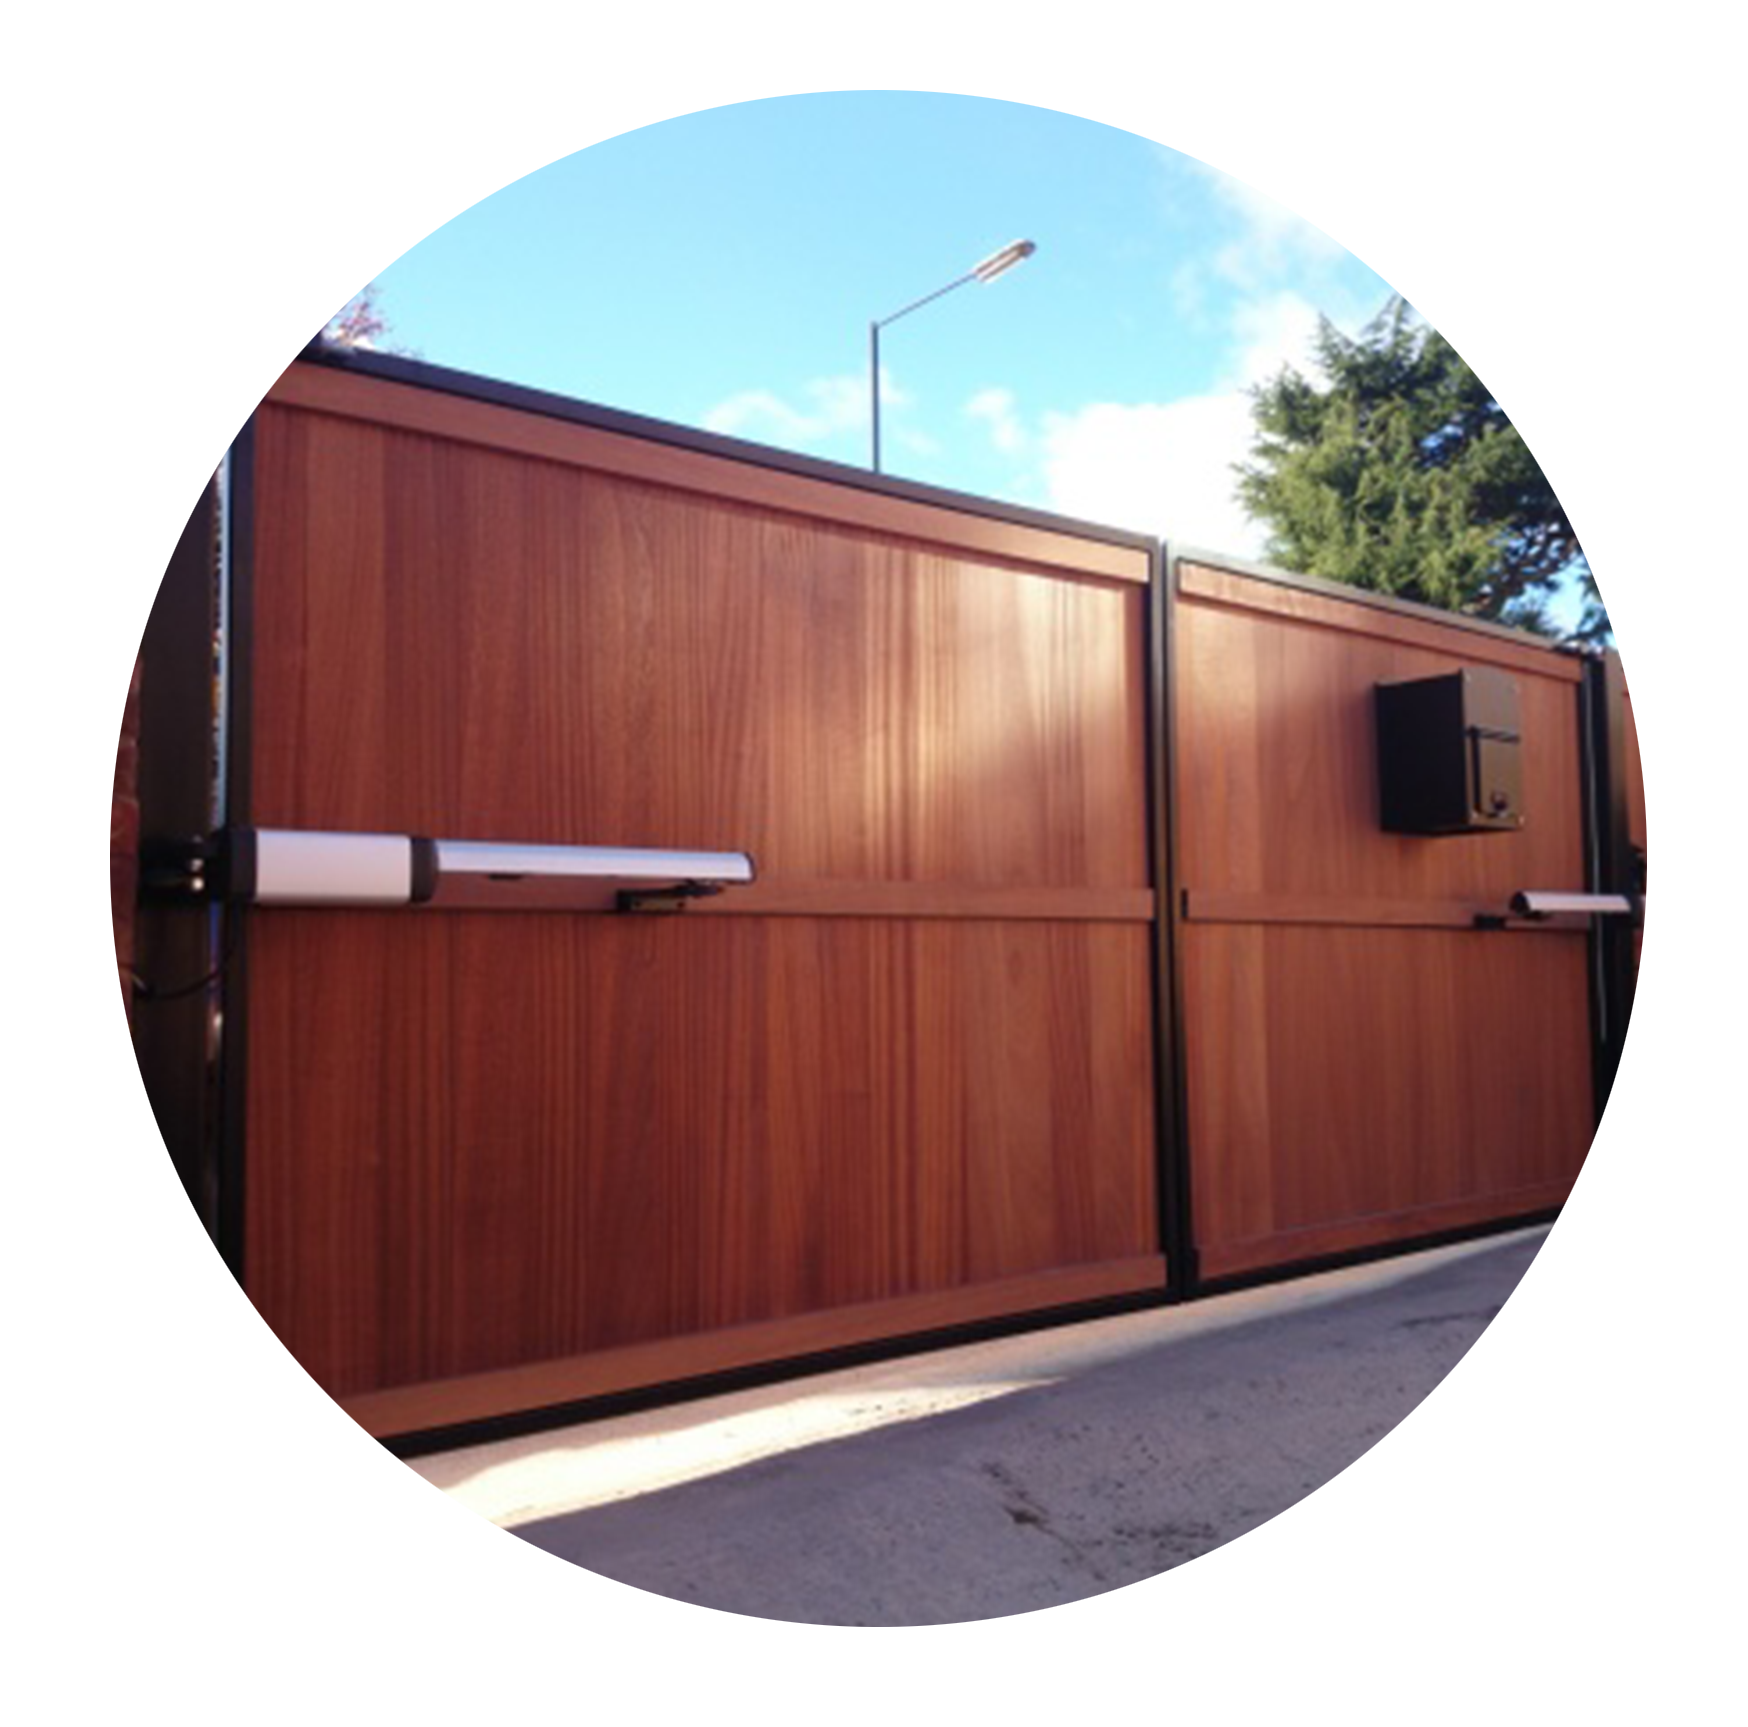 FULL DESIGN SERVICE - We also offer a full design service to create the perfect automated gates for your business or domestic property including various control options for your gates whether it is a simple radio fob system or fully automated induction ground loops, we will be able to design a solution that meets your requirements.